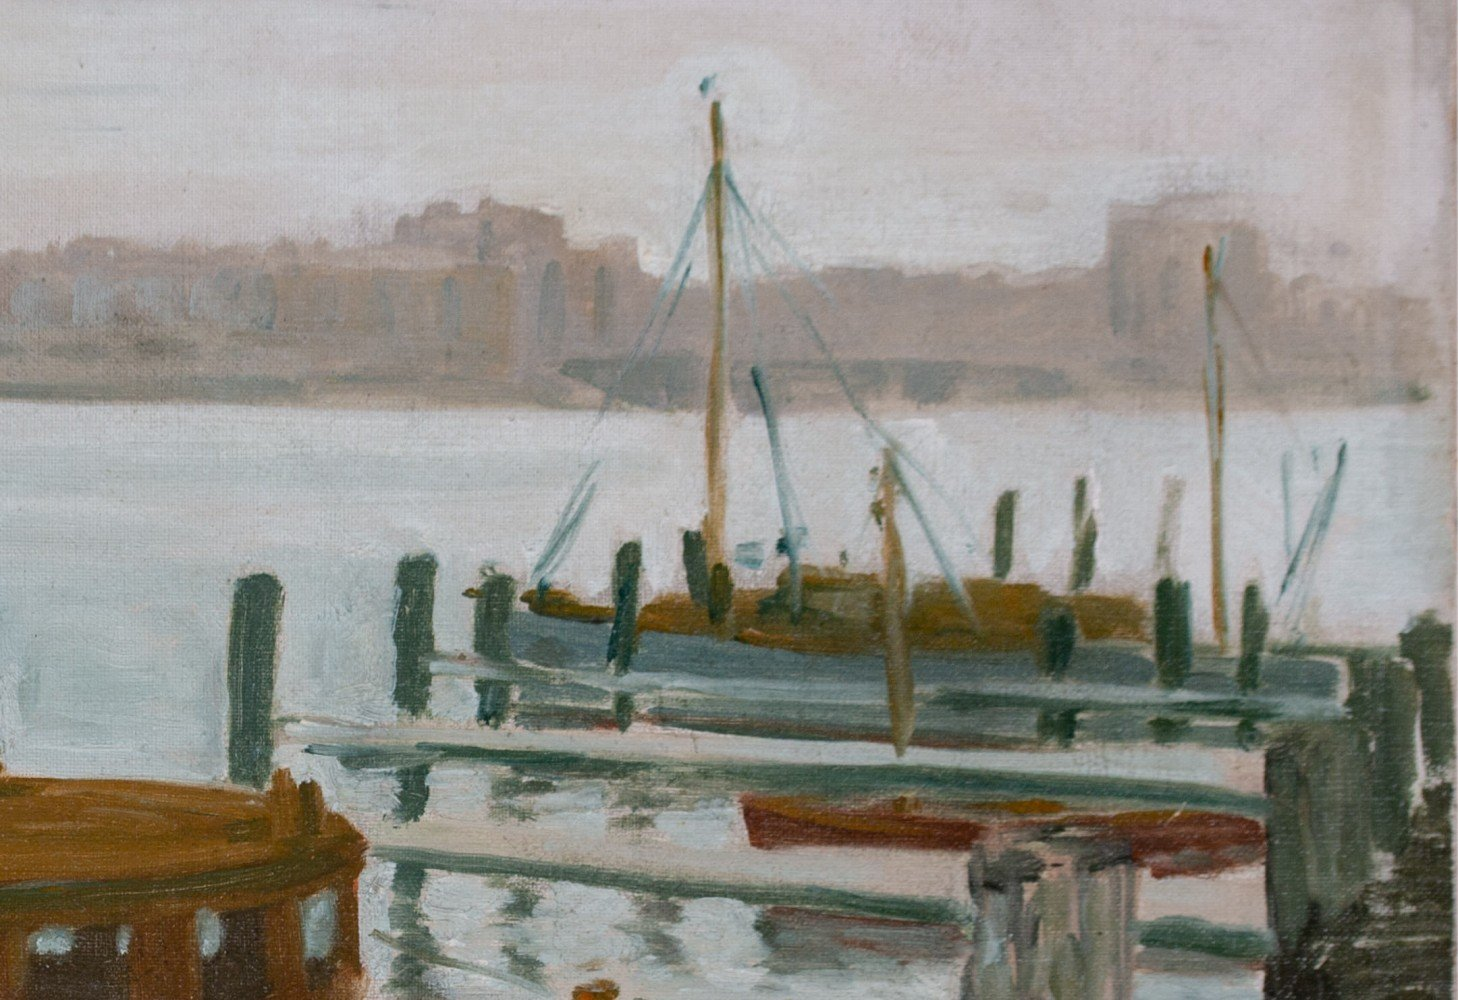 Boats at City Dock, Early 20th Century American School